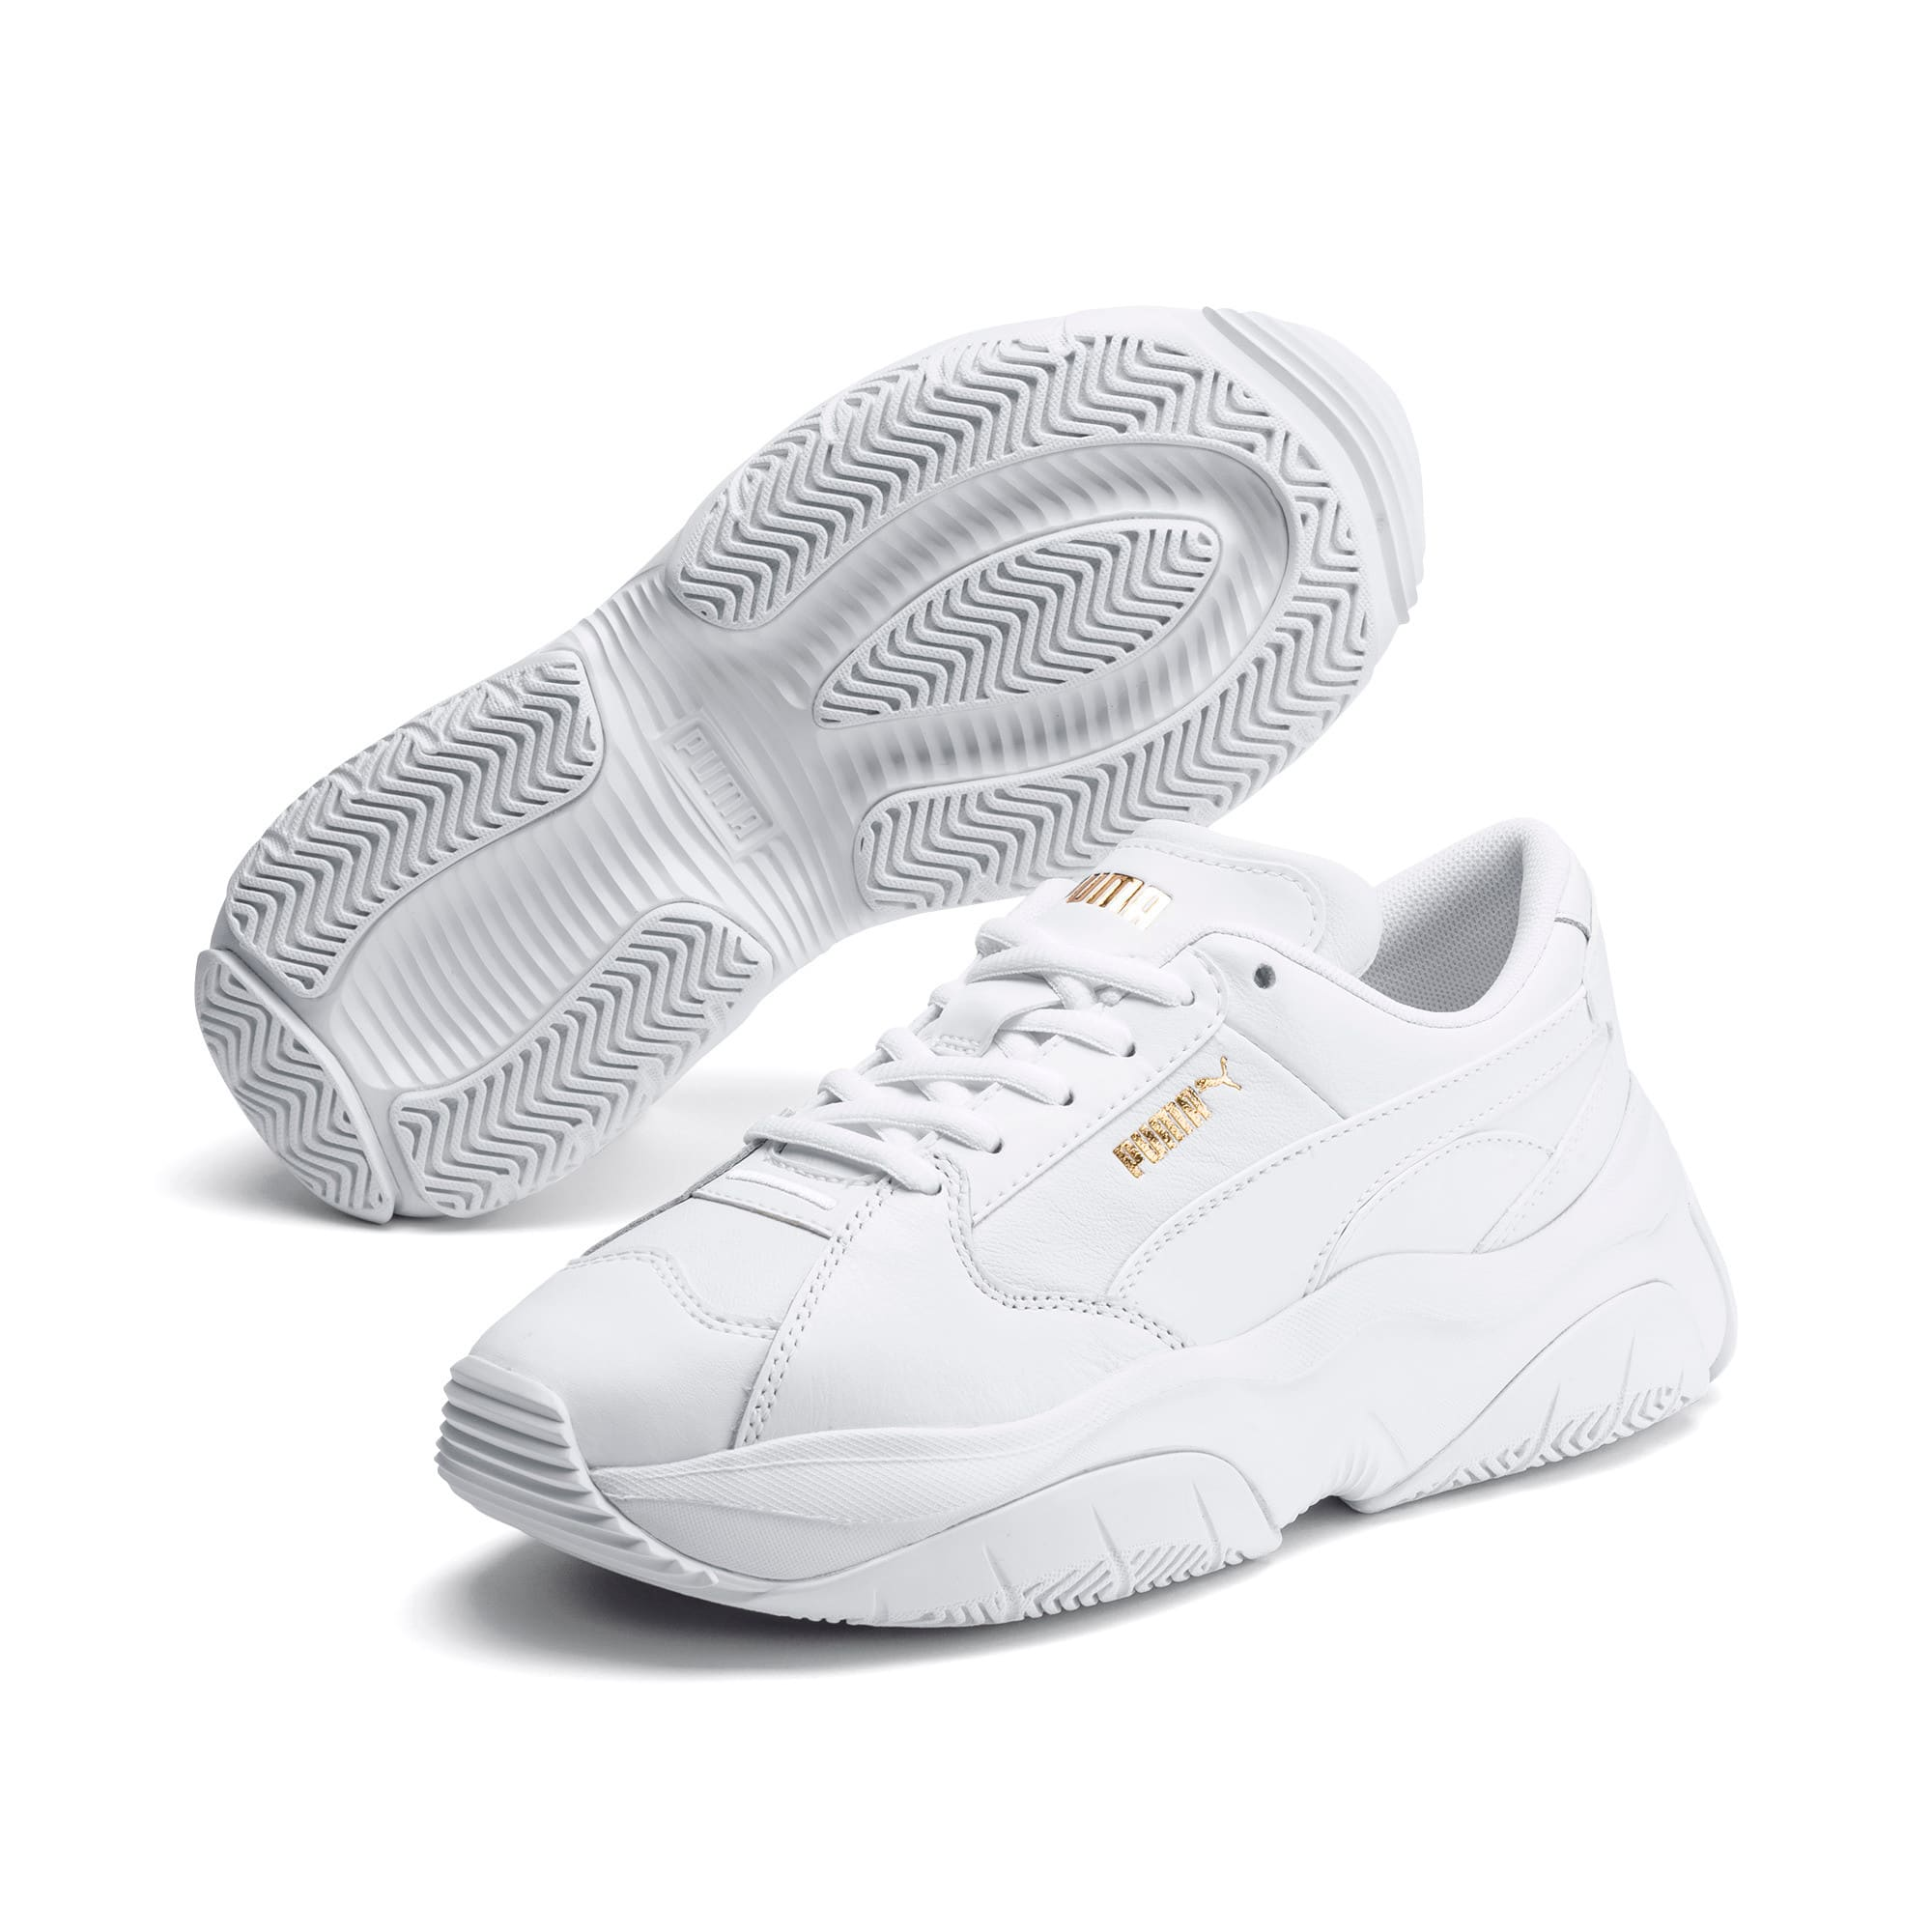 Thumbnail 2 of STORM.Y Leather Women's Trainers, Puma White, medium